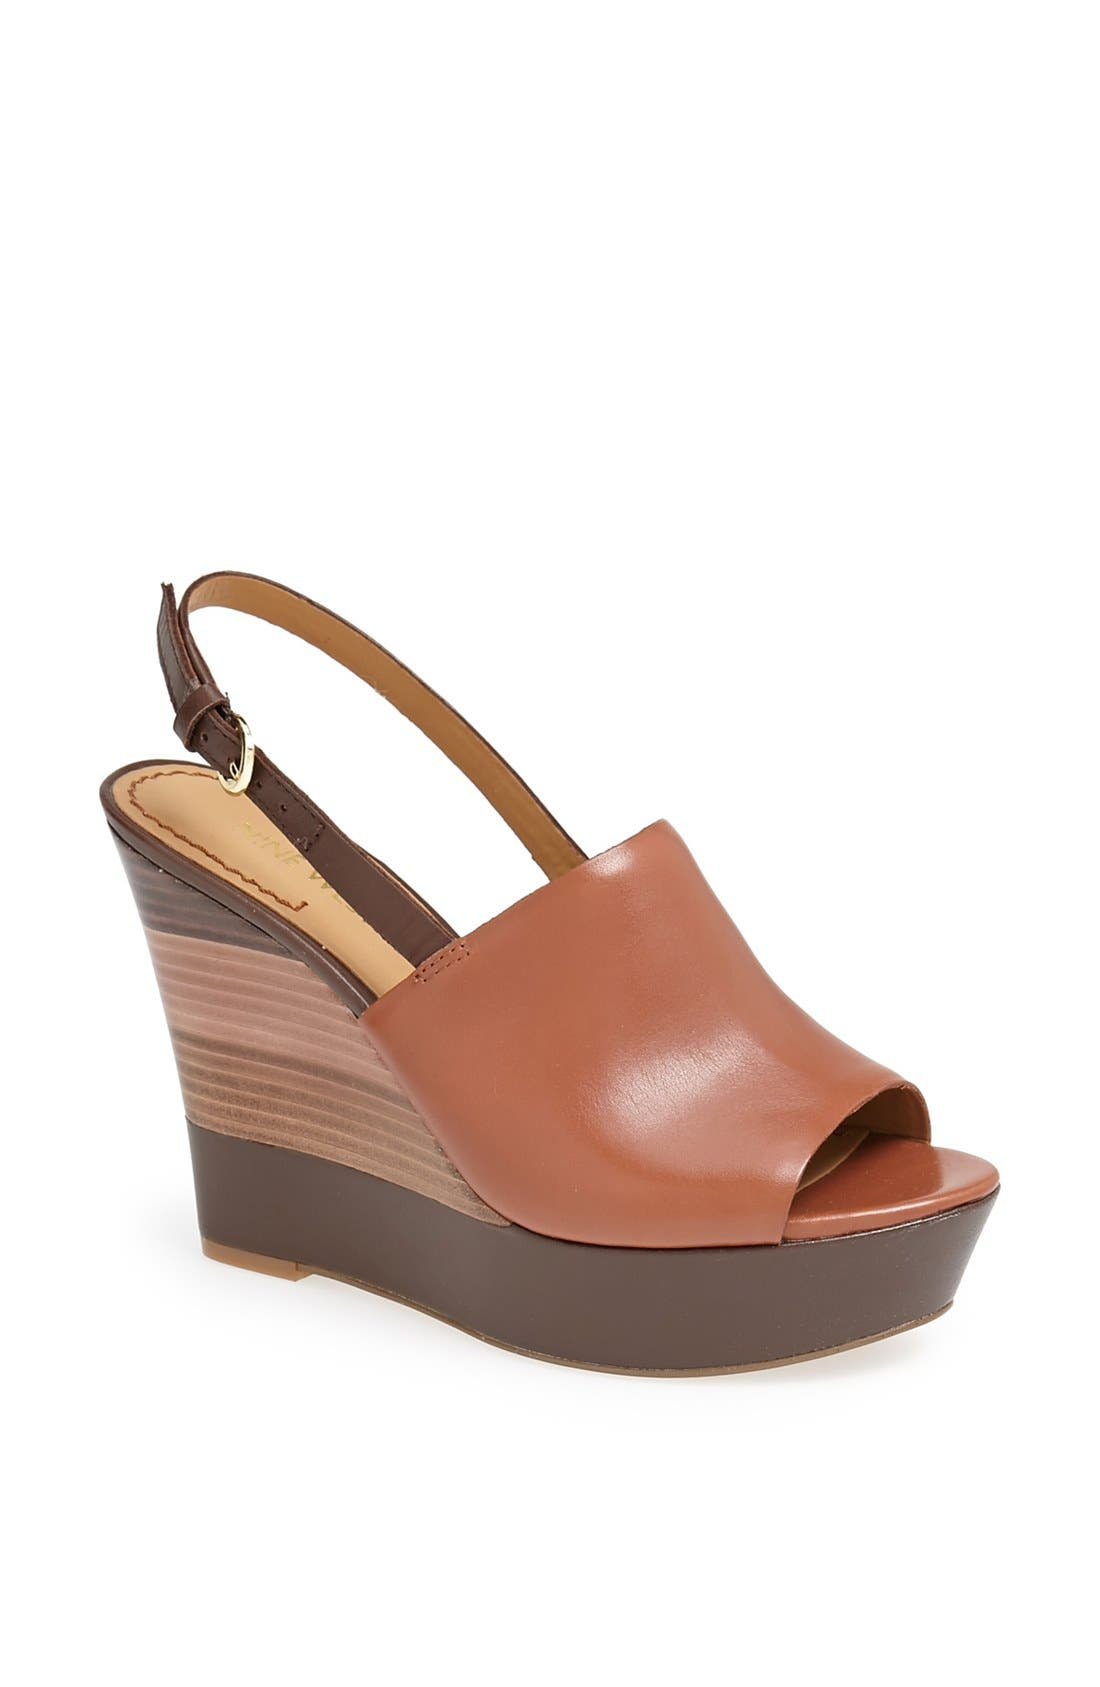 Main Image - Nine West 'Jayce' Sandal